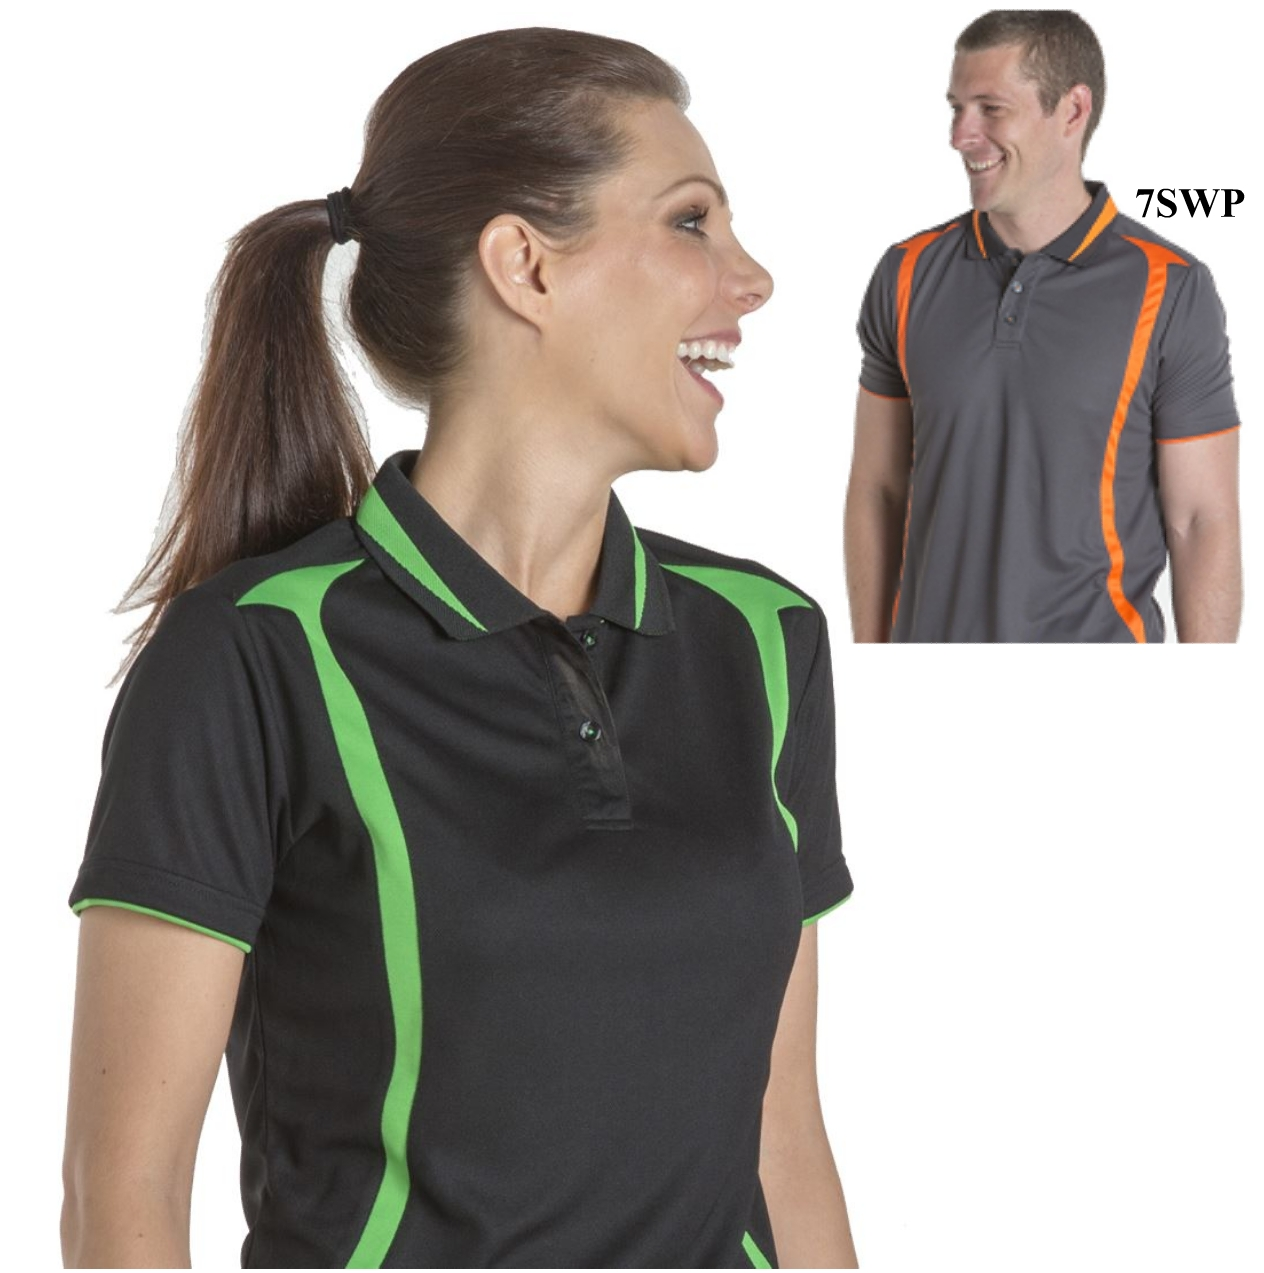 JBswear 7SWP1-JBs Ladies Podium Swirl POLO